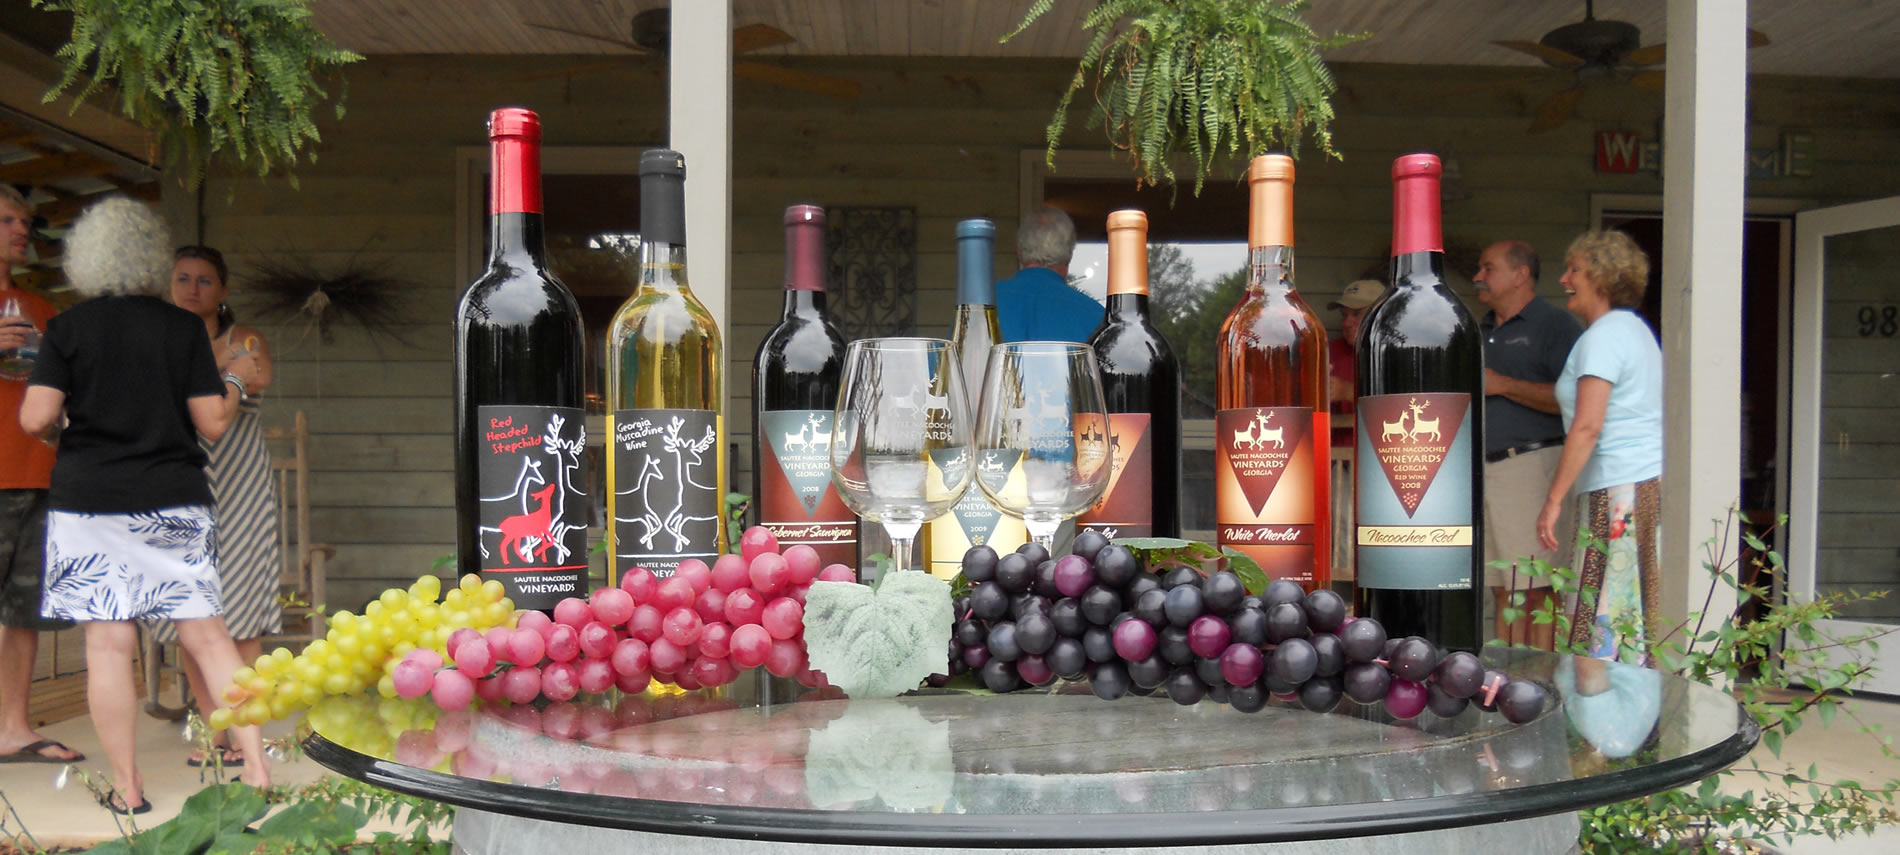 Seven bottles of different wines on a glass table with Red Grapes, Greeen Grapes and black grapes.